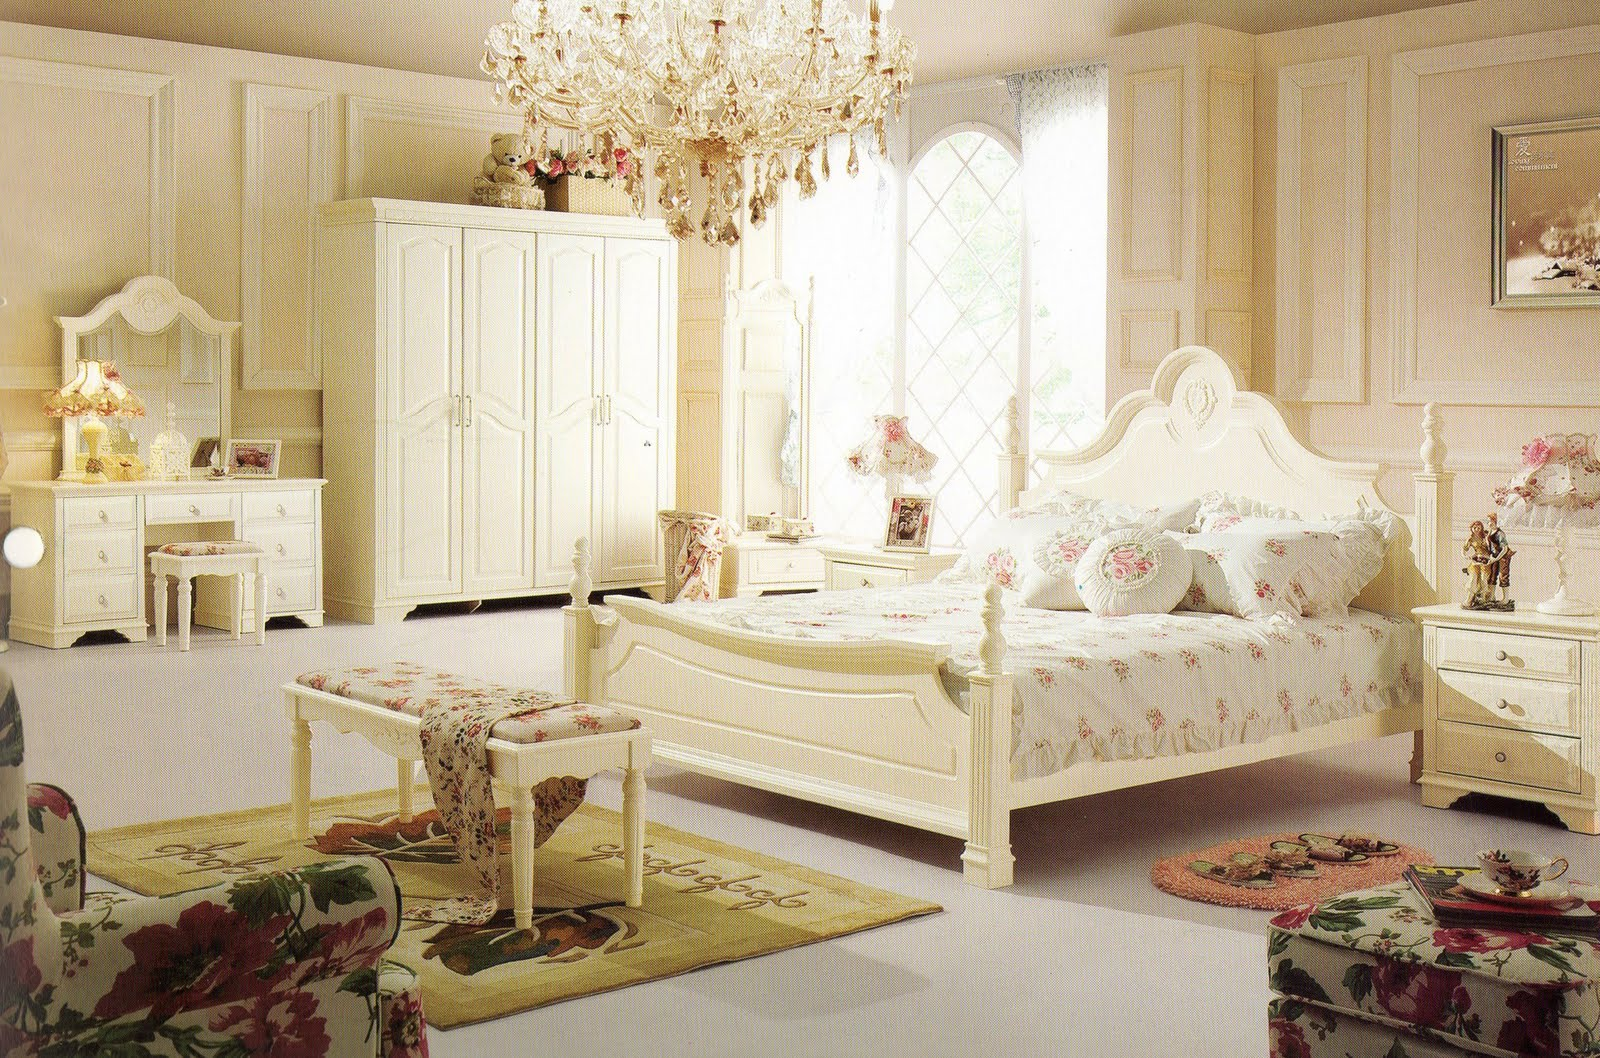 Fsd new arrival of our beautiful and elegant french style bedroom suites - Beautiful bedroom images ...